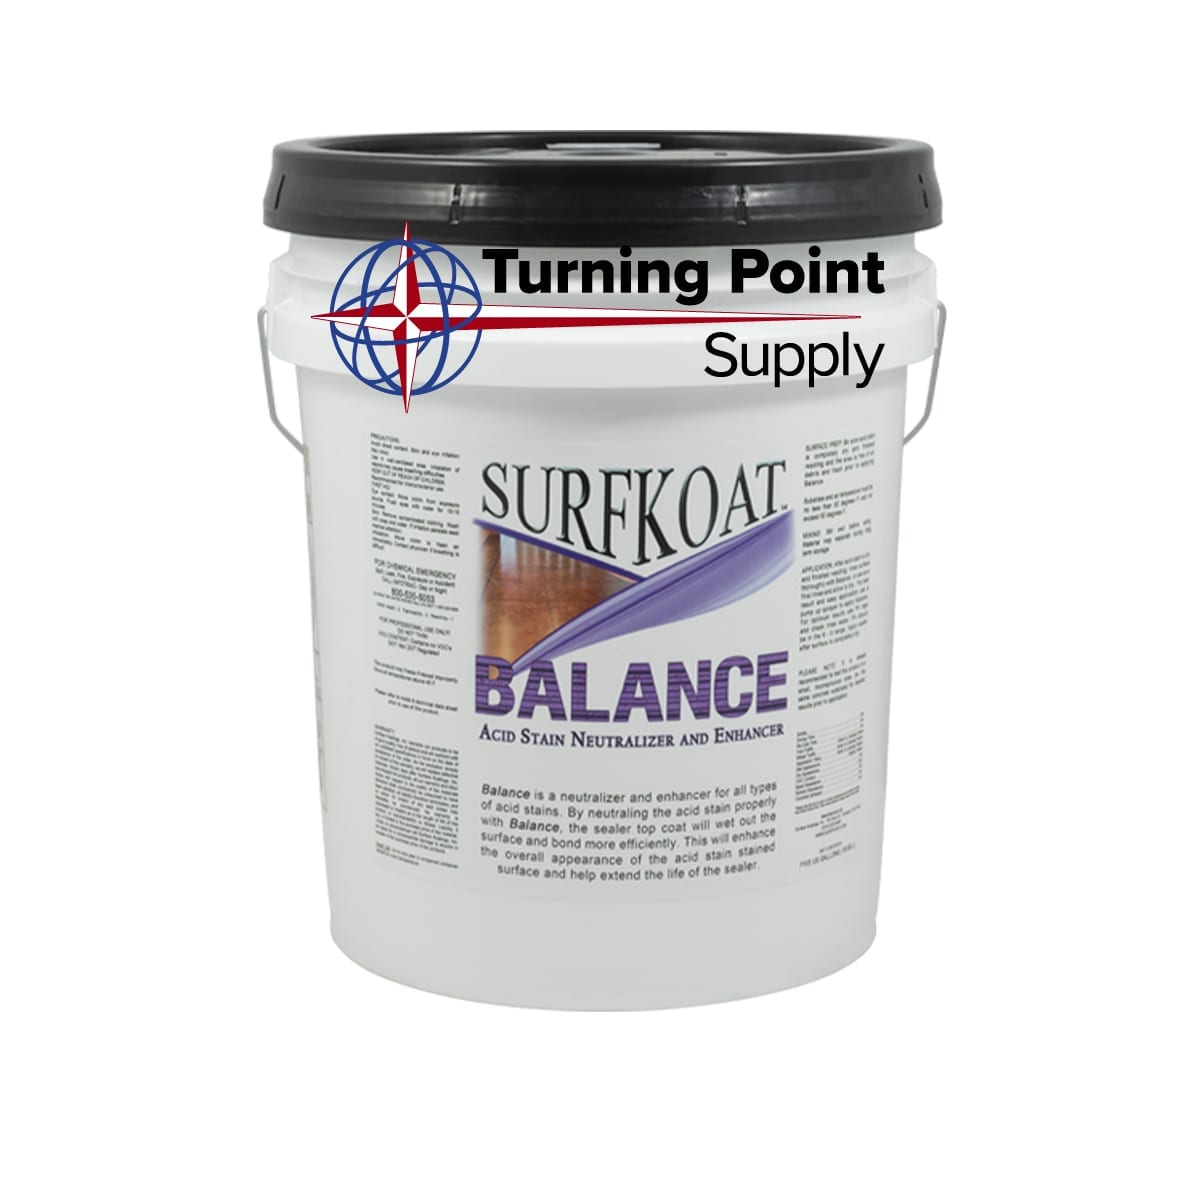 Balance Neutralizing Agent and Acid Stain Enhancer Charlotte and Raleigh North Carolina